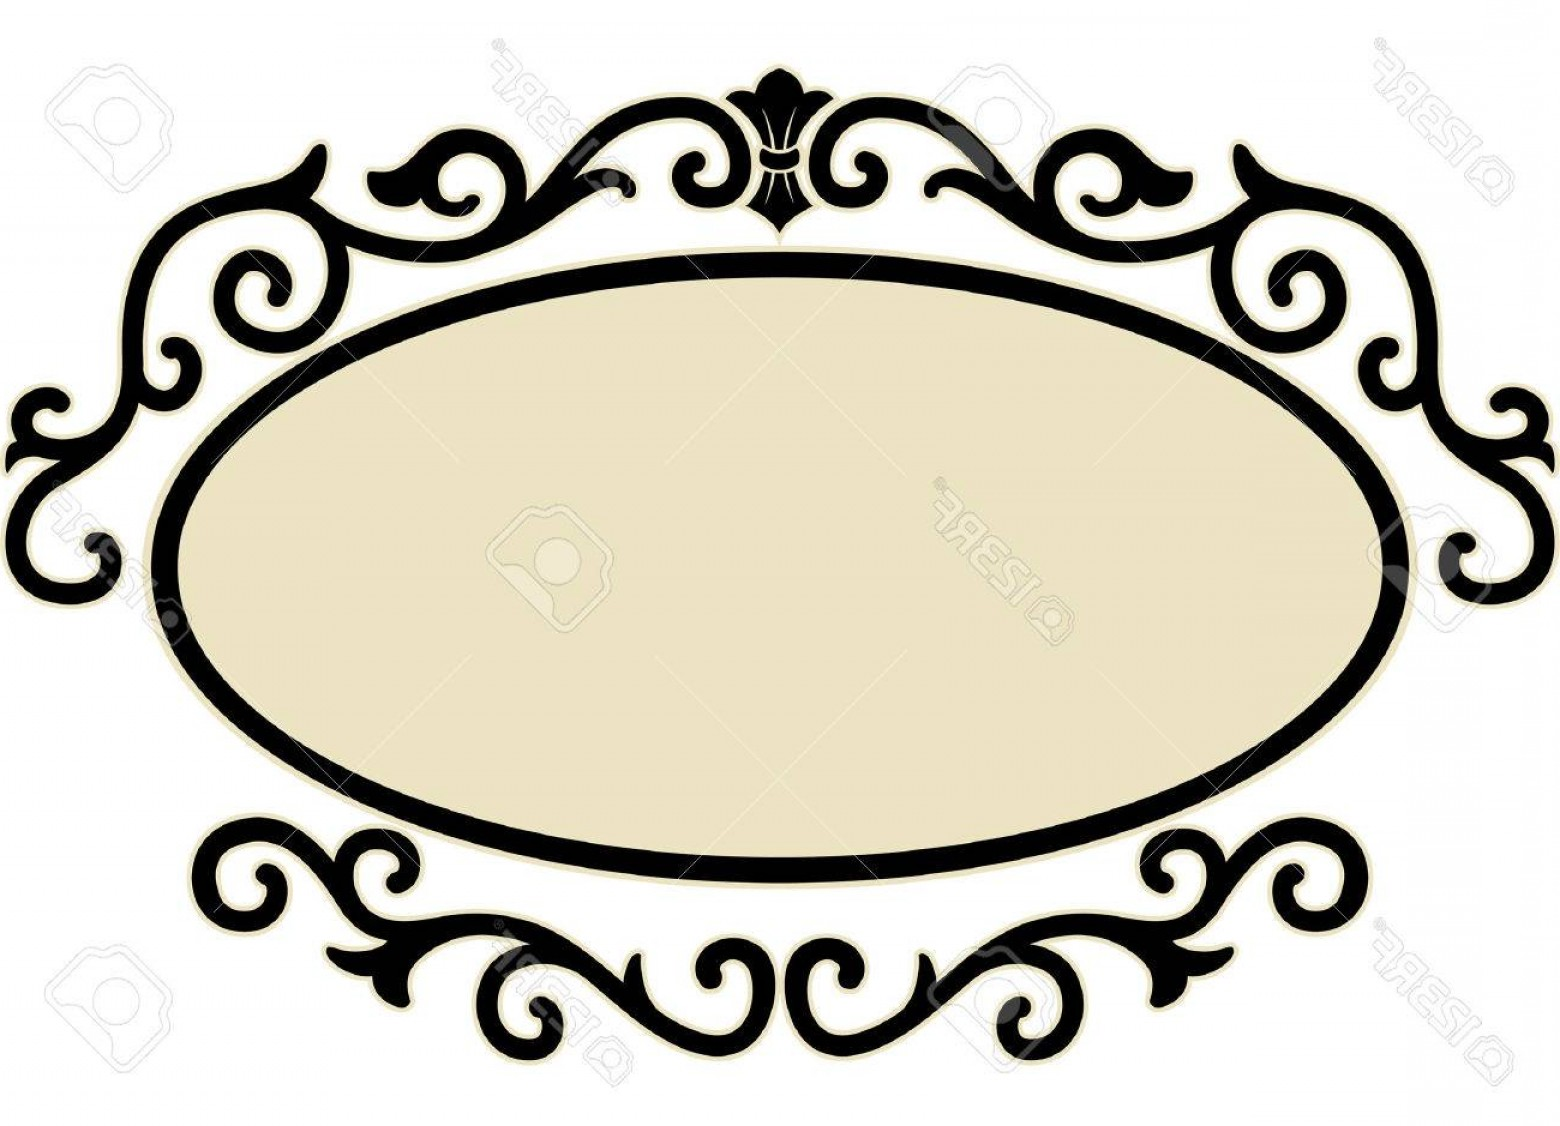 Filigree Oval Frame Vector: Photostock Vector Illustration Of An Oval Frame Surrounded By Decorative Swirls